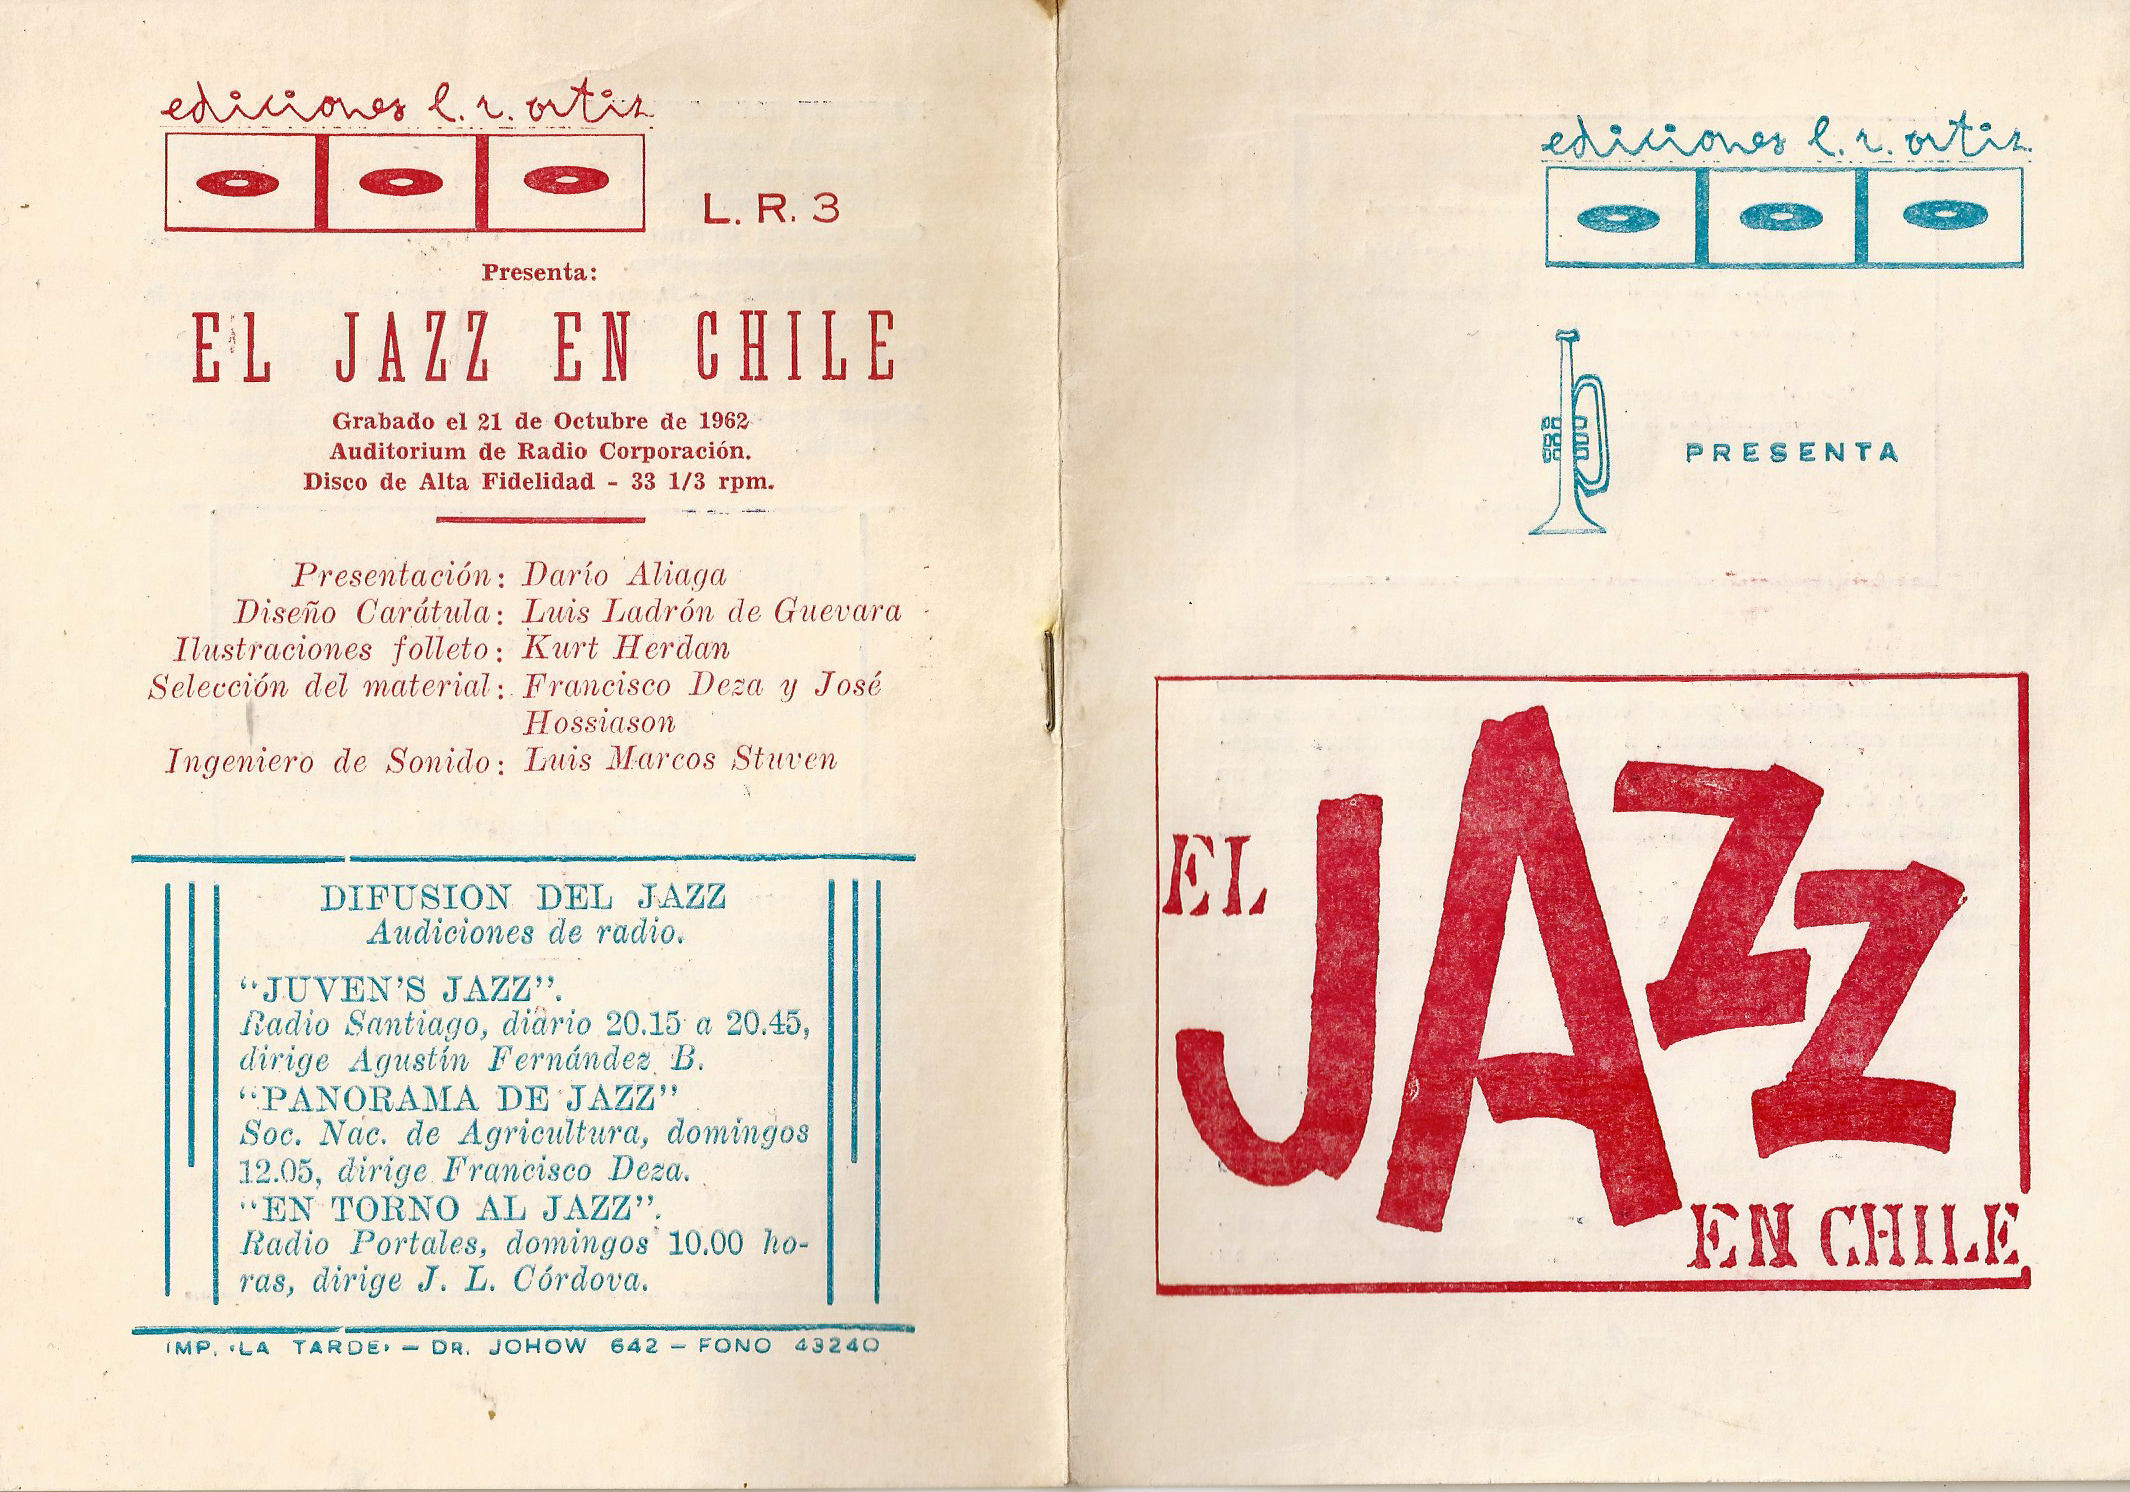 dossier jazz en chile